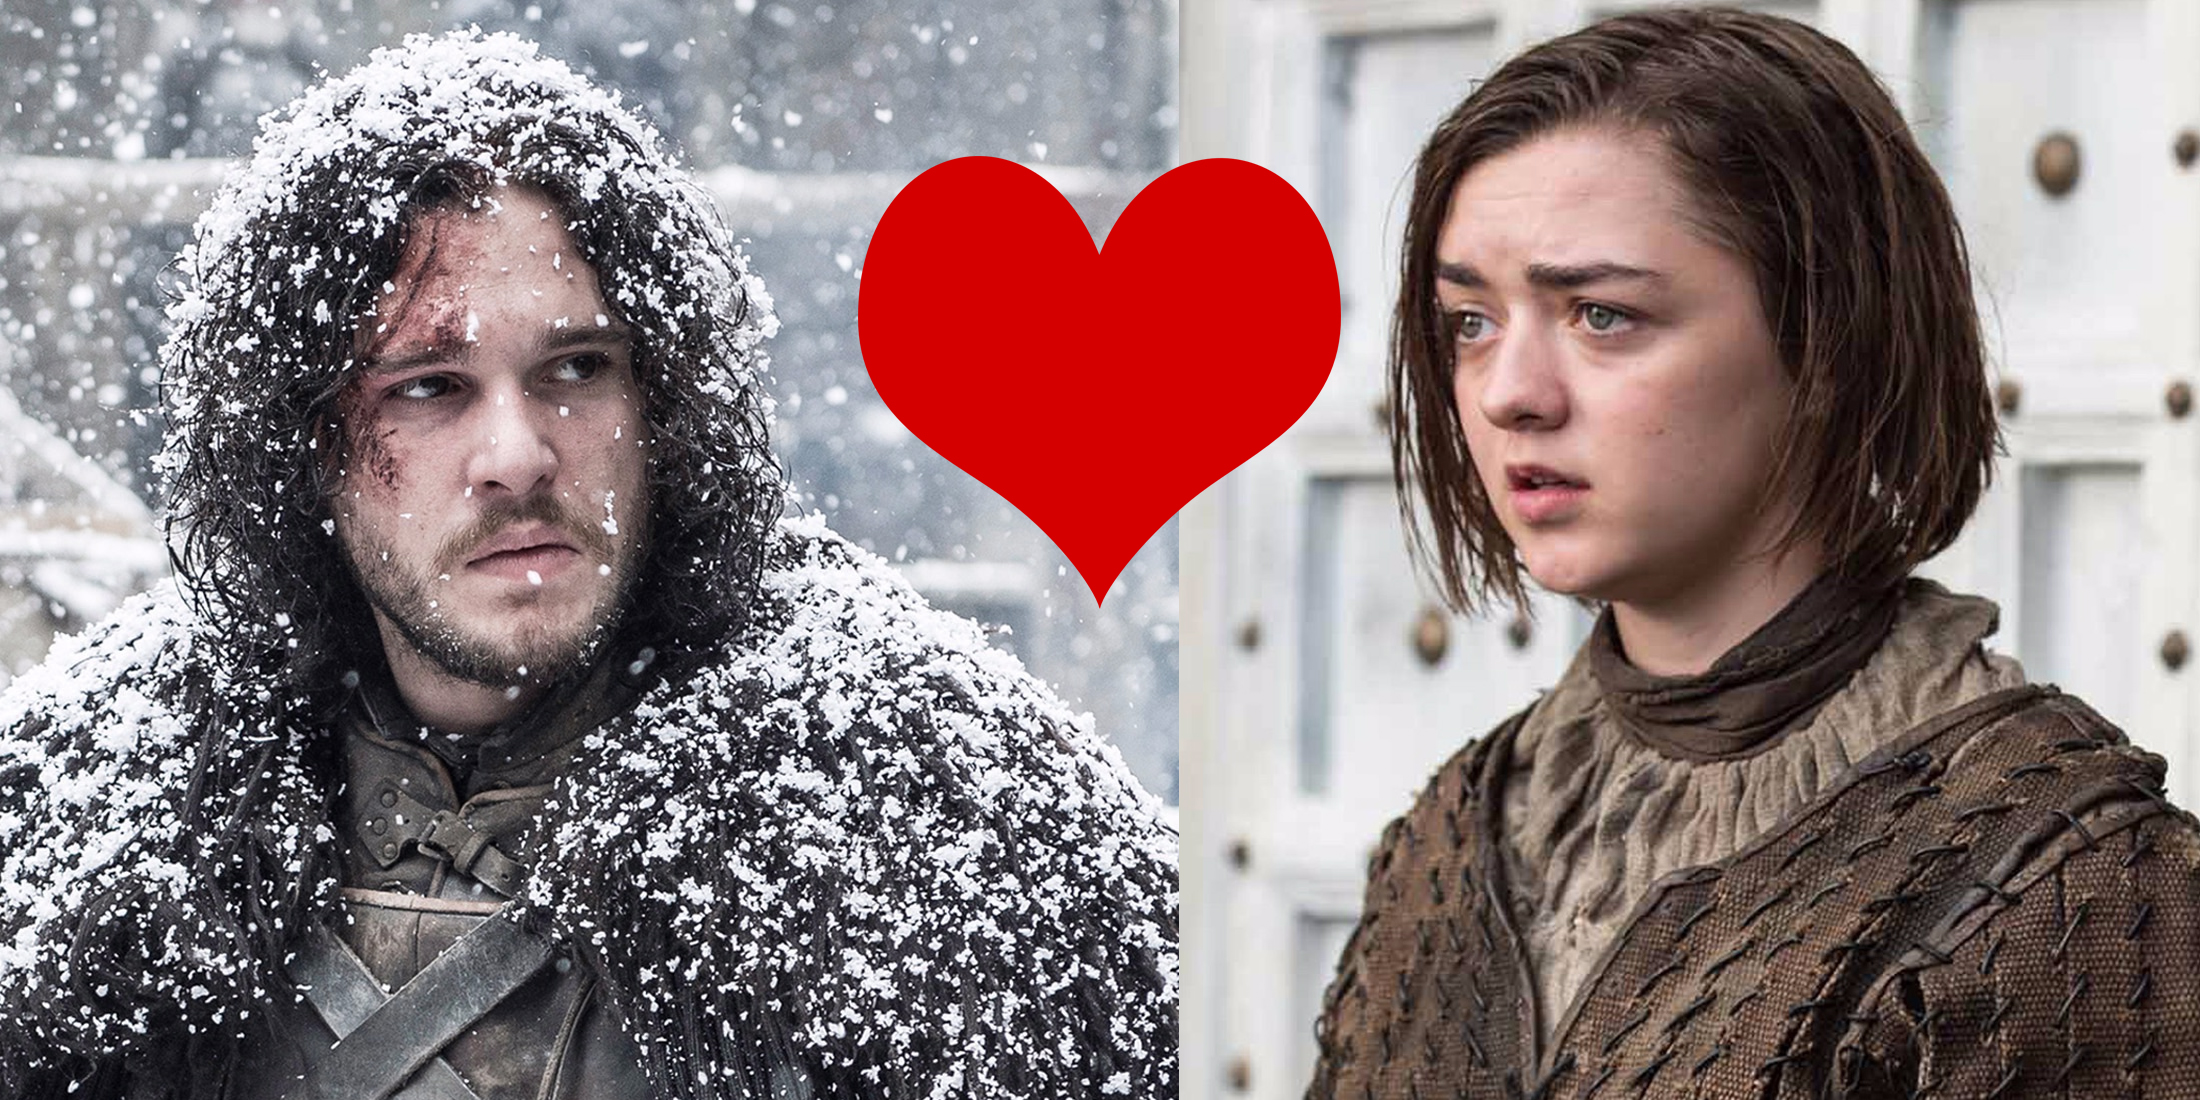 15 Insane Game Of Thrones Storylines That Almost Happened